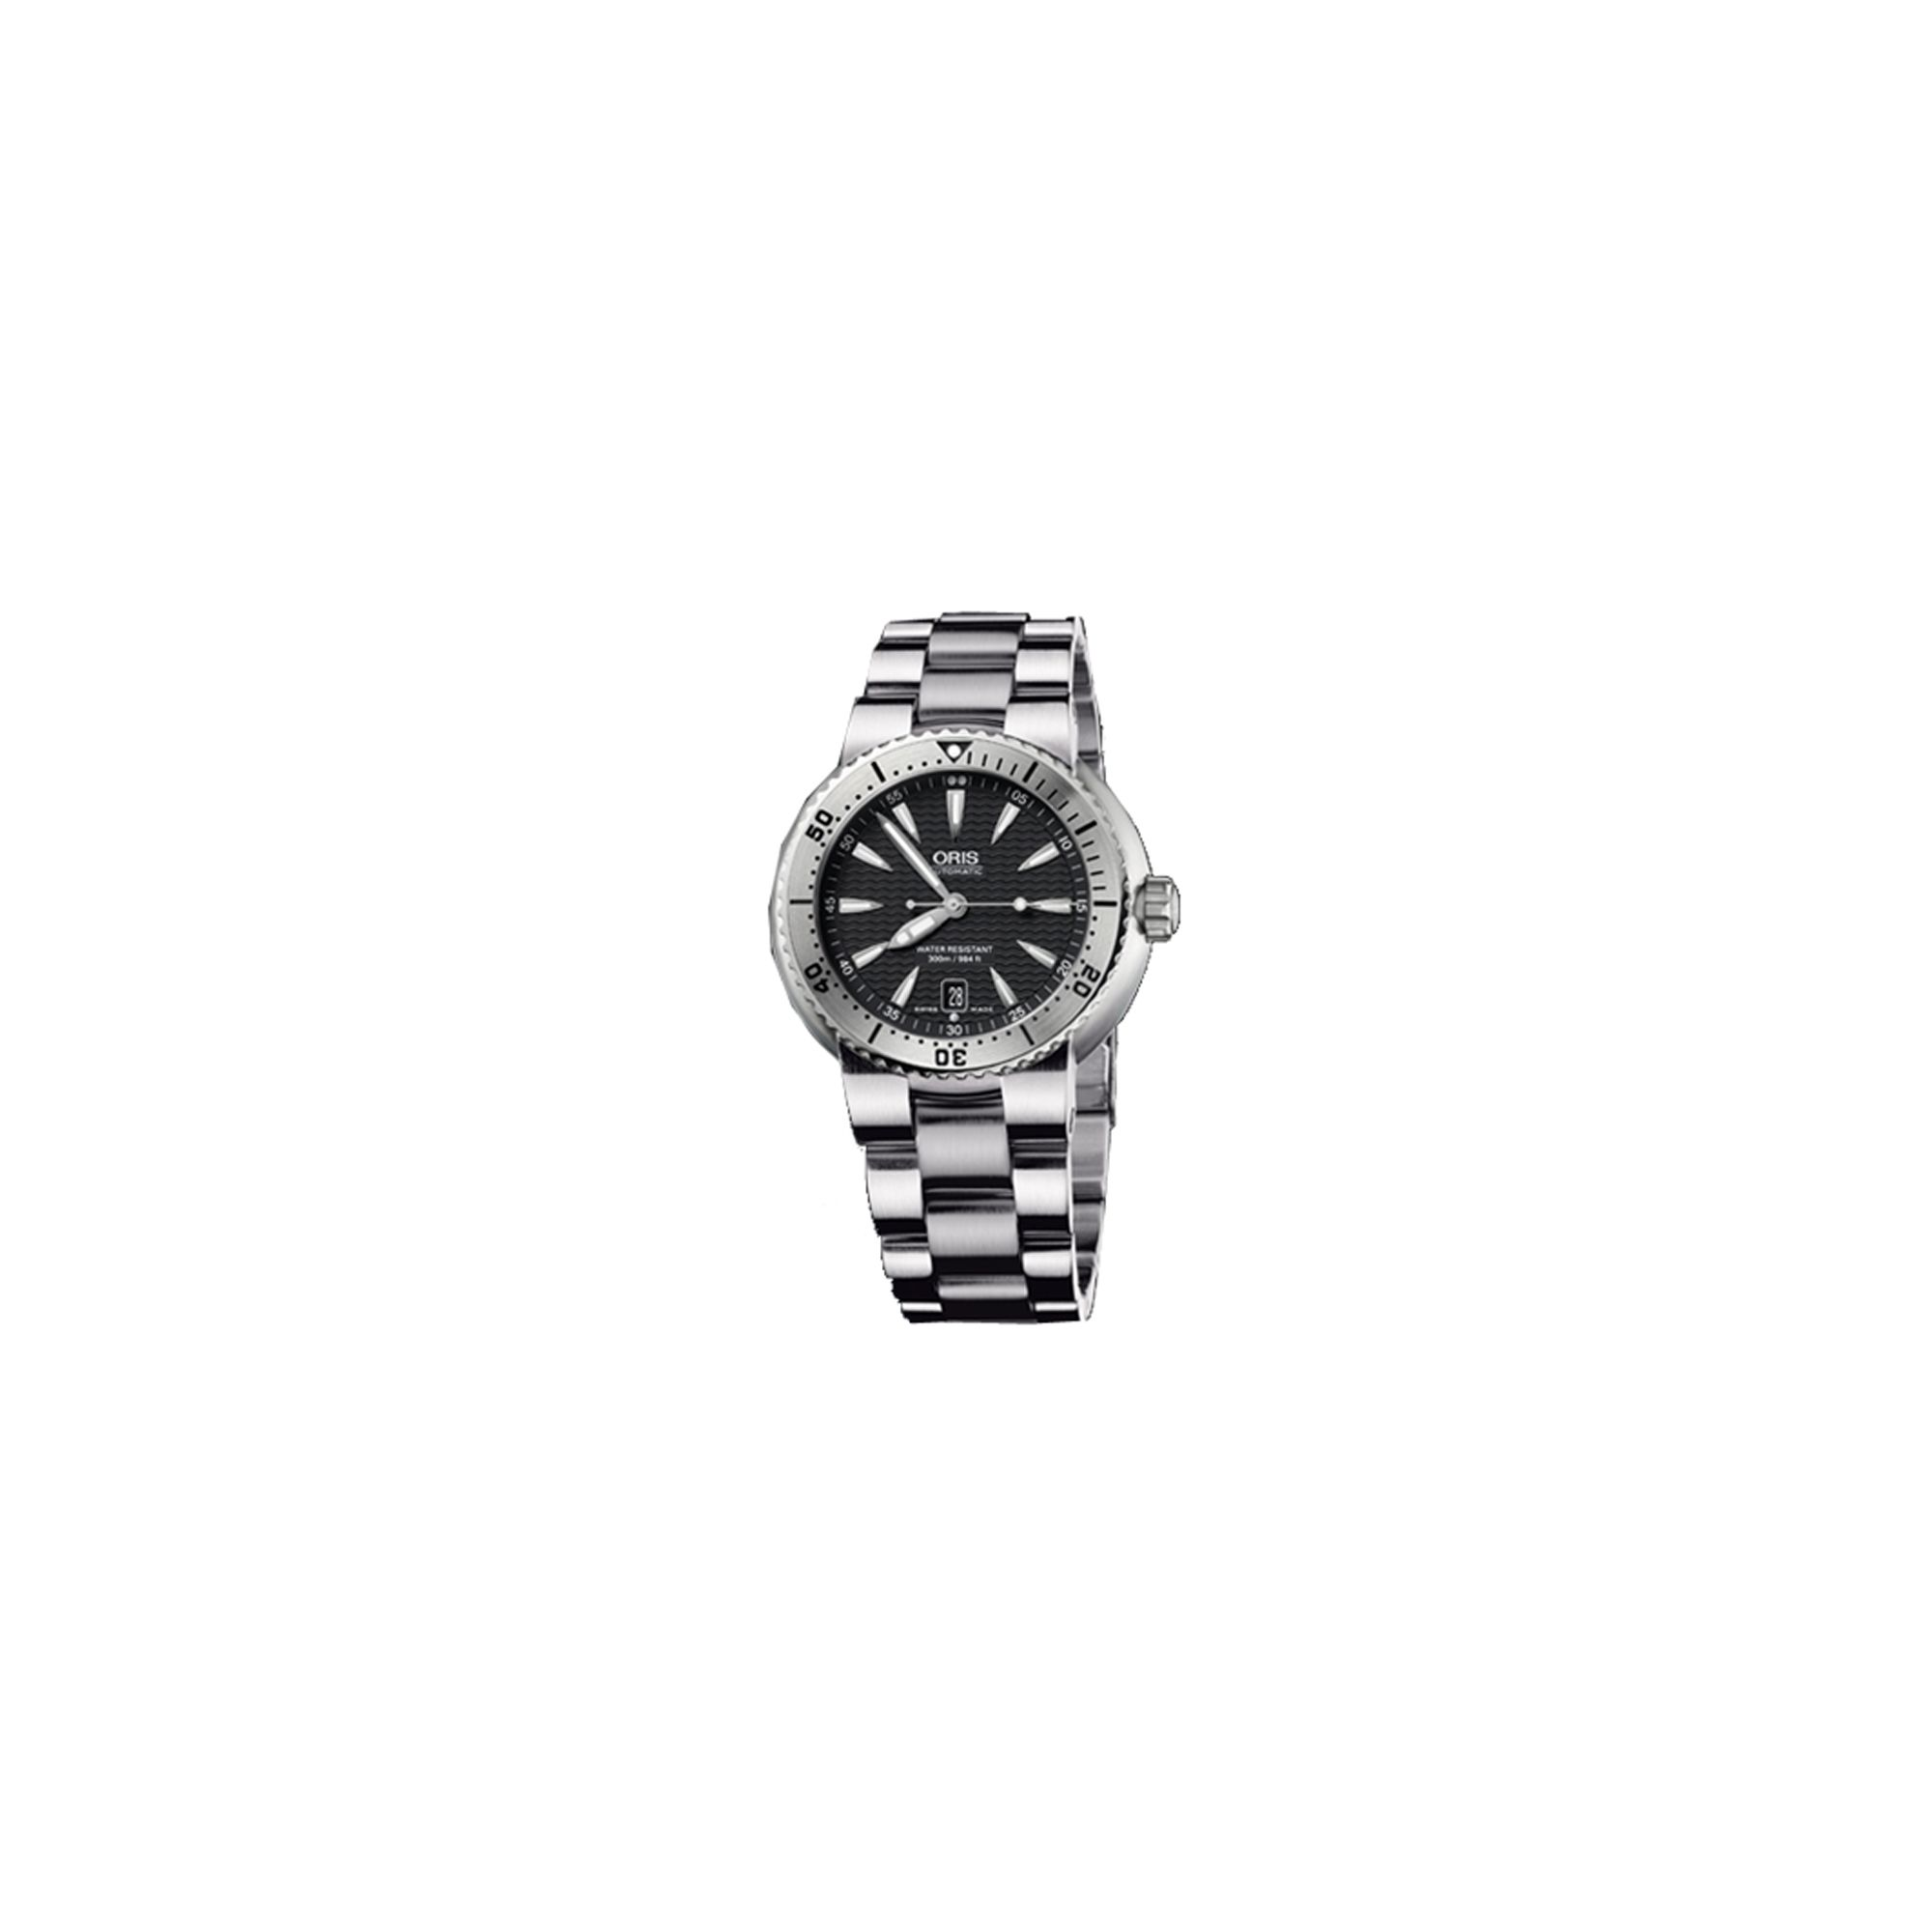 Oris Gents Drivers Gate Silver Tone Bracelet Watch 73375334154MB at Tesco Direct